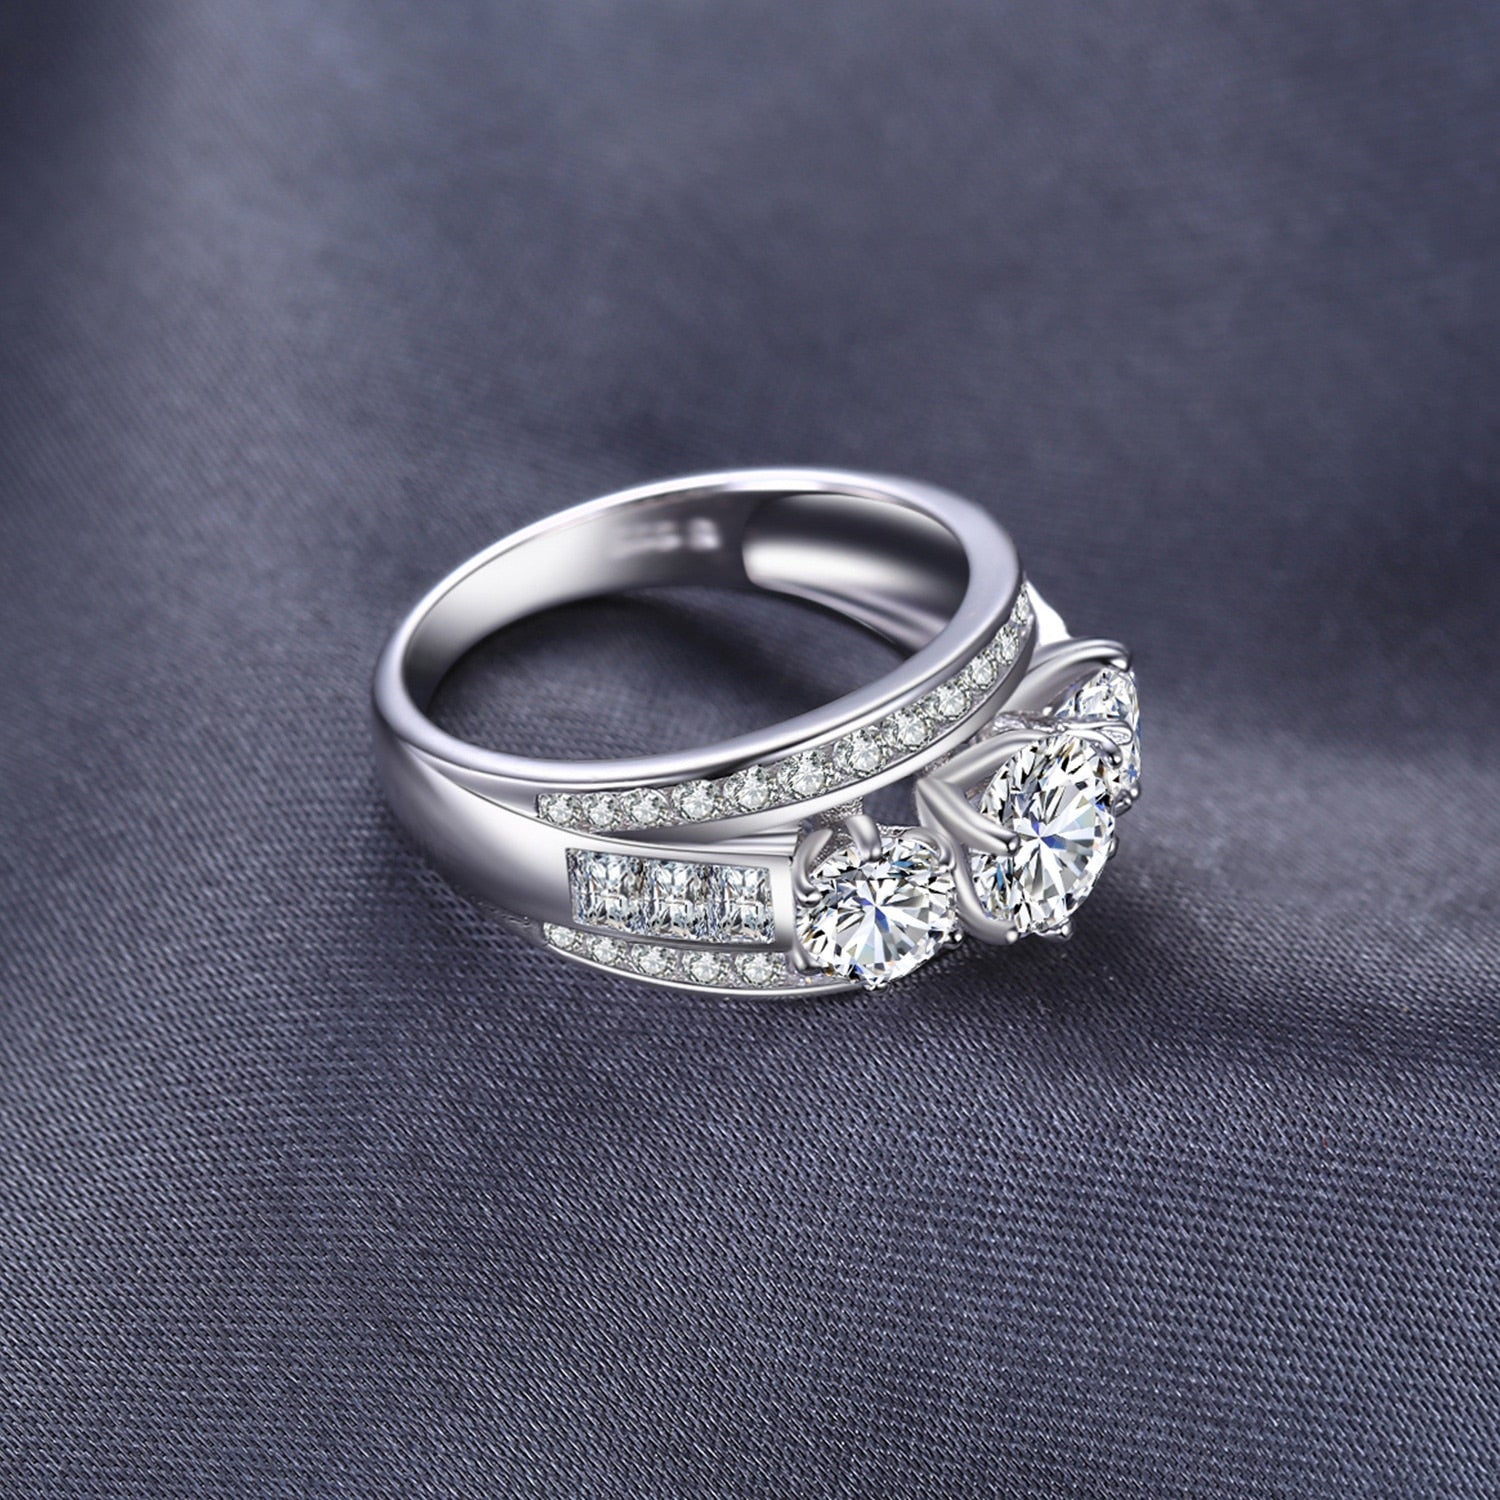 Engagement Ring Anniversary Wedding Rings for Women - BEAUVAN